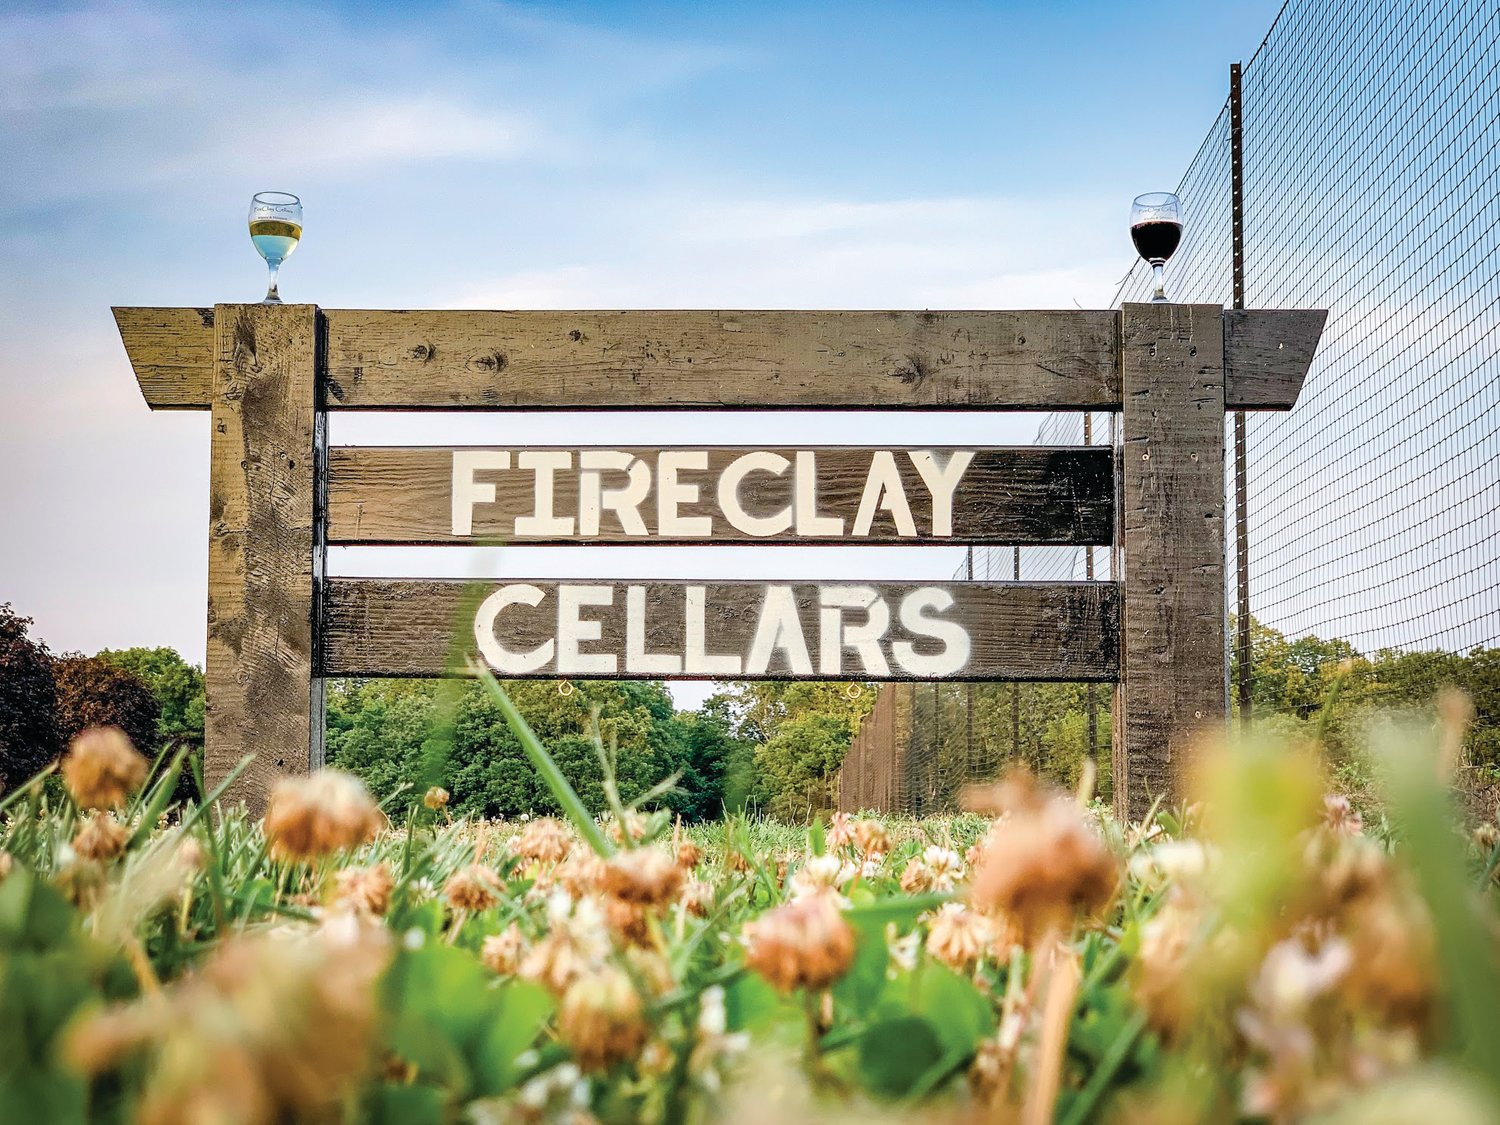 The signage for FireClay Cellars on Bowers Store Road, off U.S. Highway 64 between Siler City and Pittsboro.